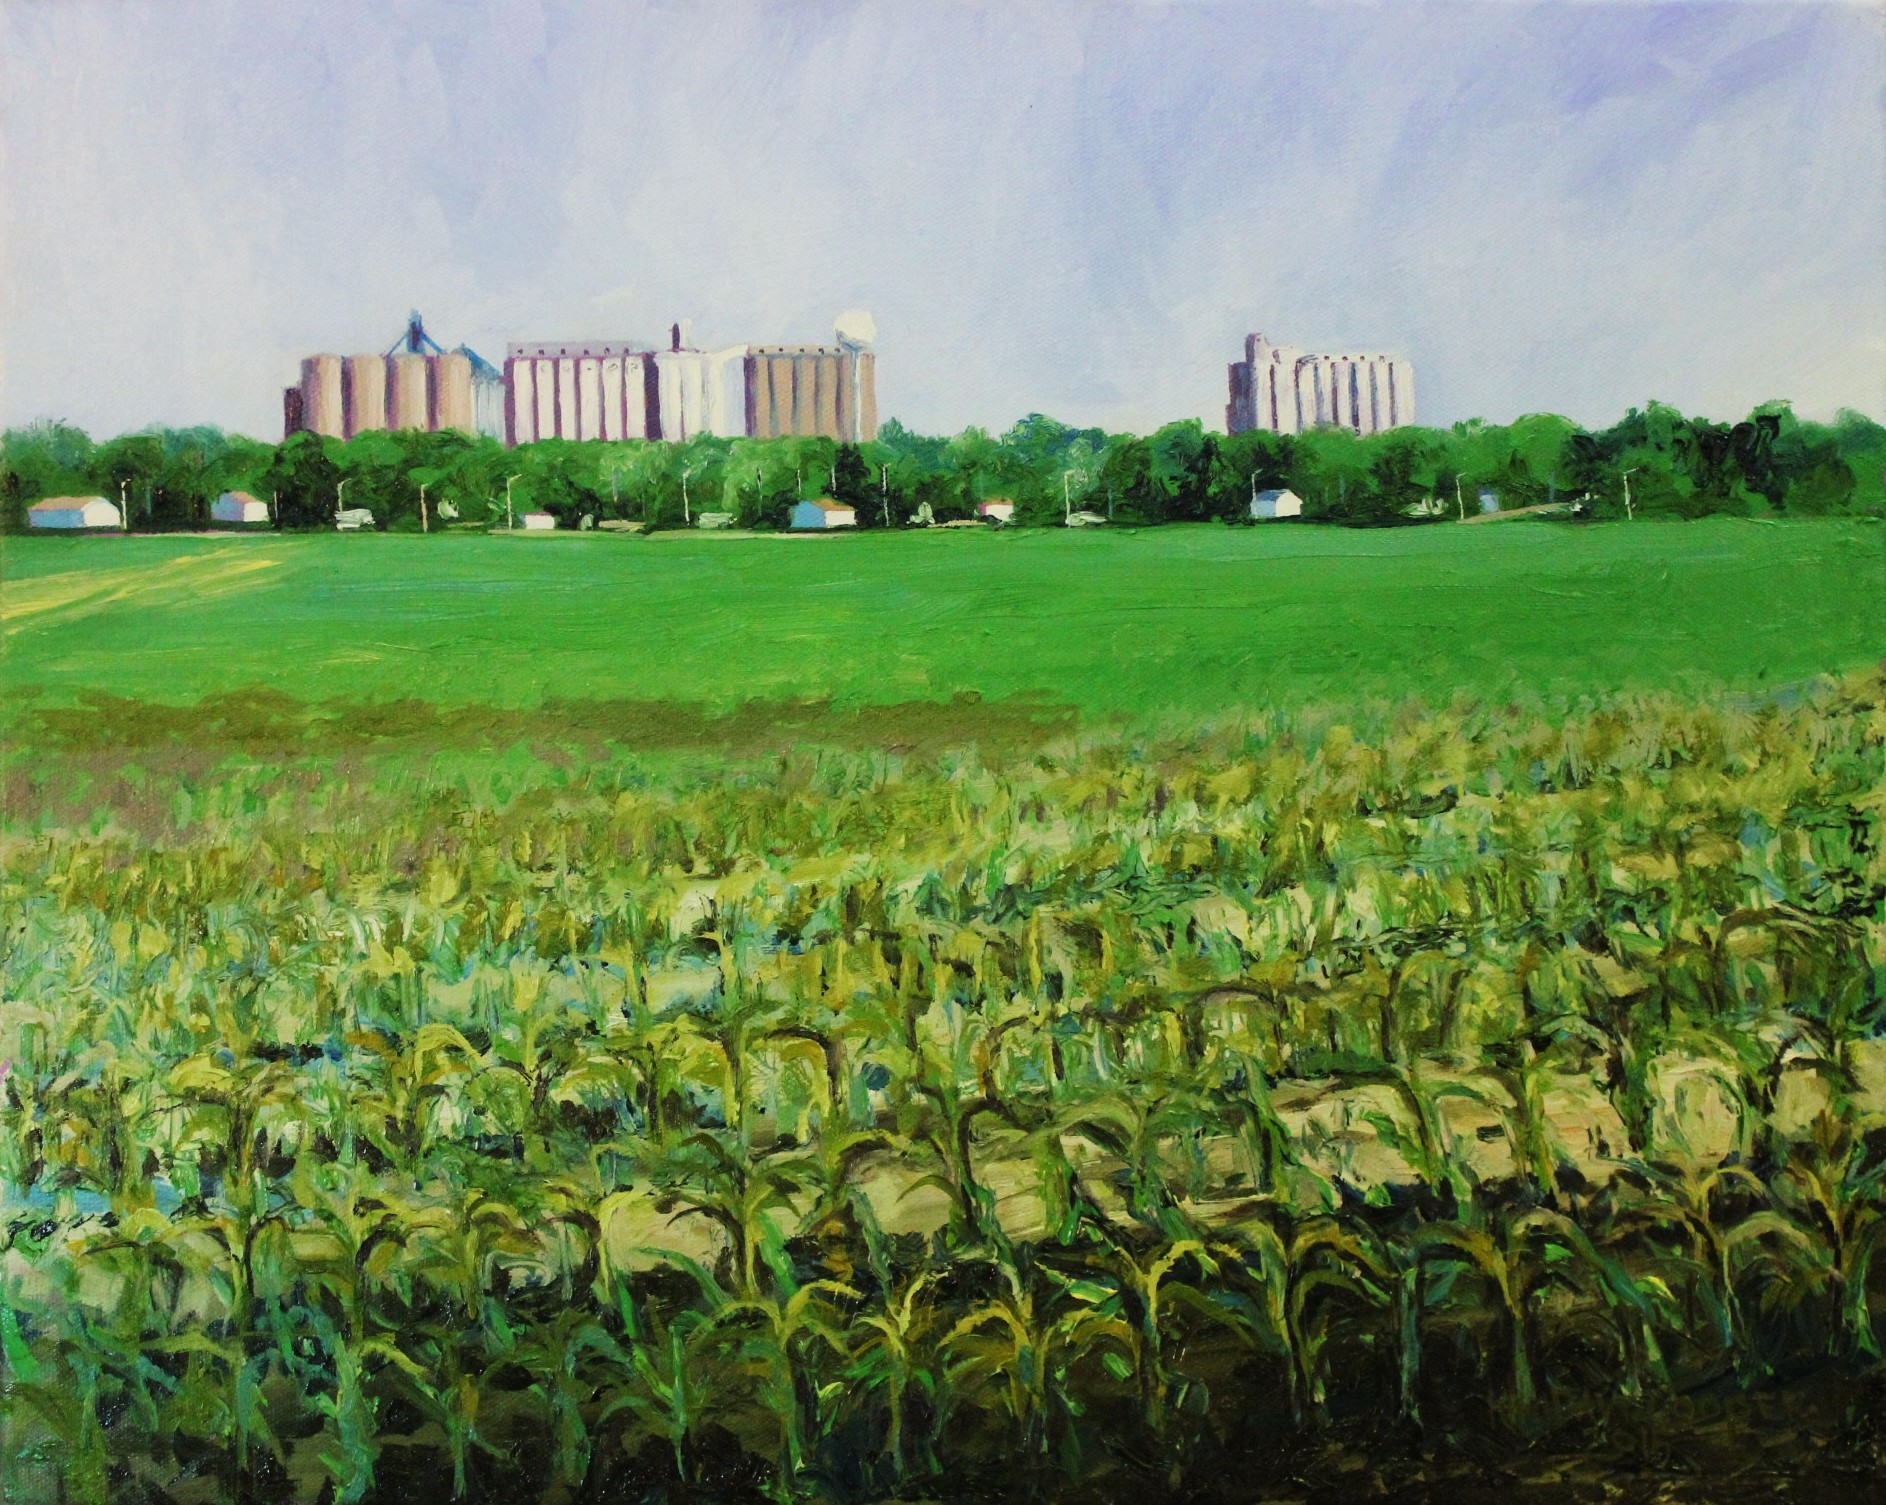 Corn and Cathedrals, 16x20, oil on canvas, Plein Air, 2015, Kim David Cooper